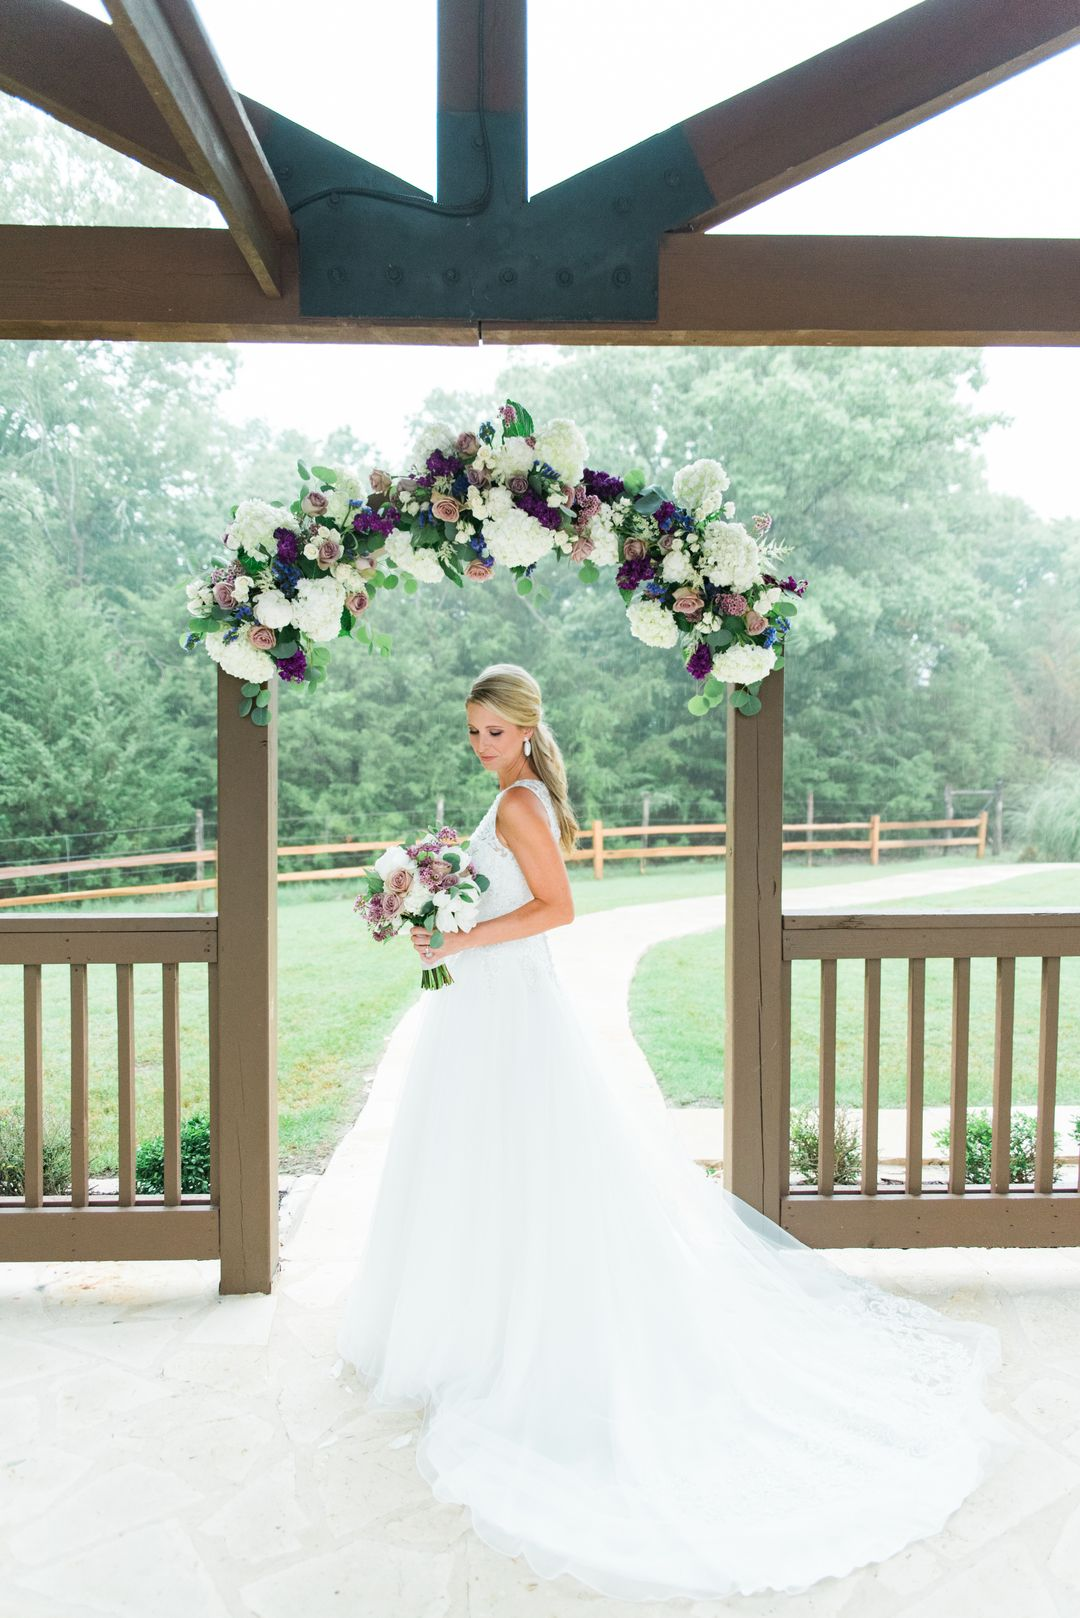 Beautiful bride. She had a lavender wedding at THE SPRINGS